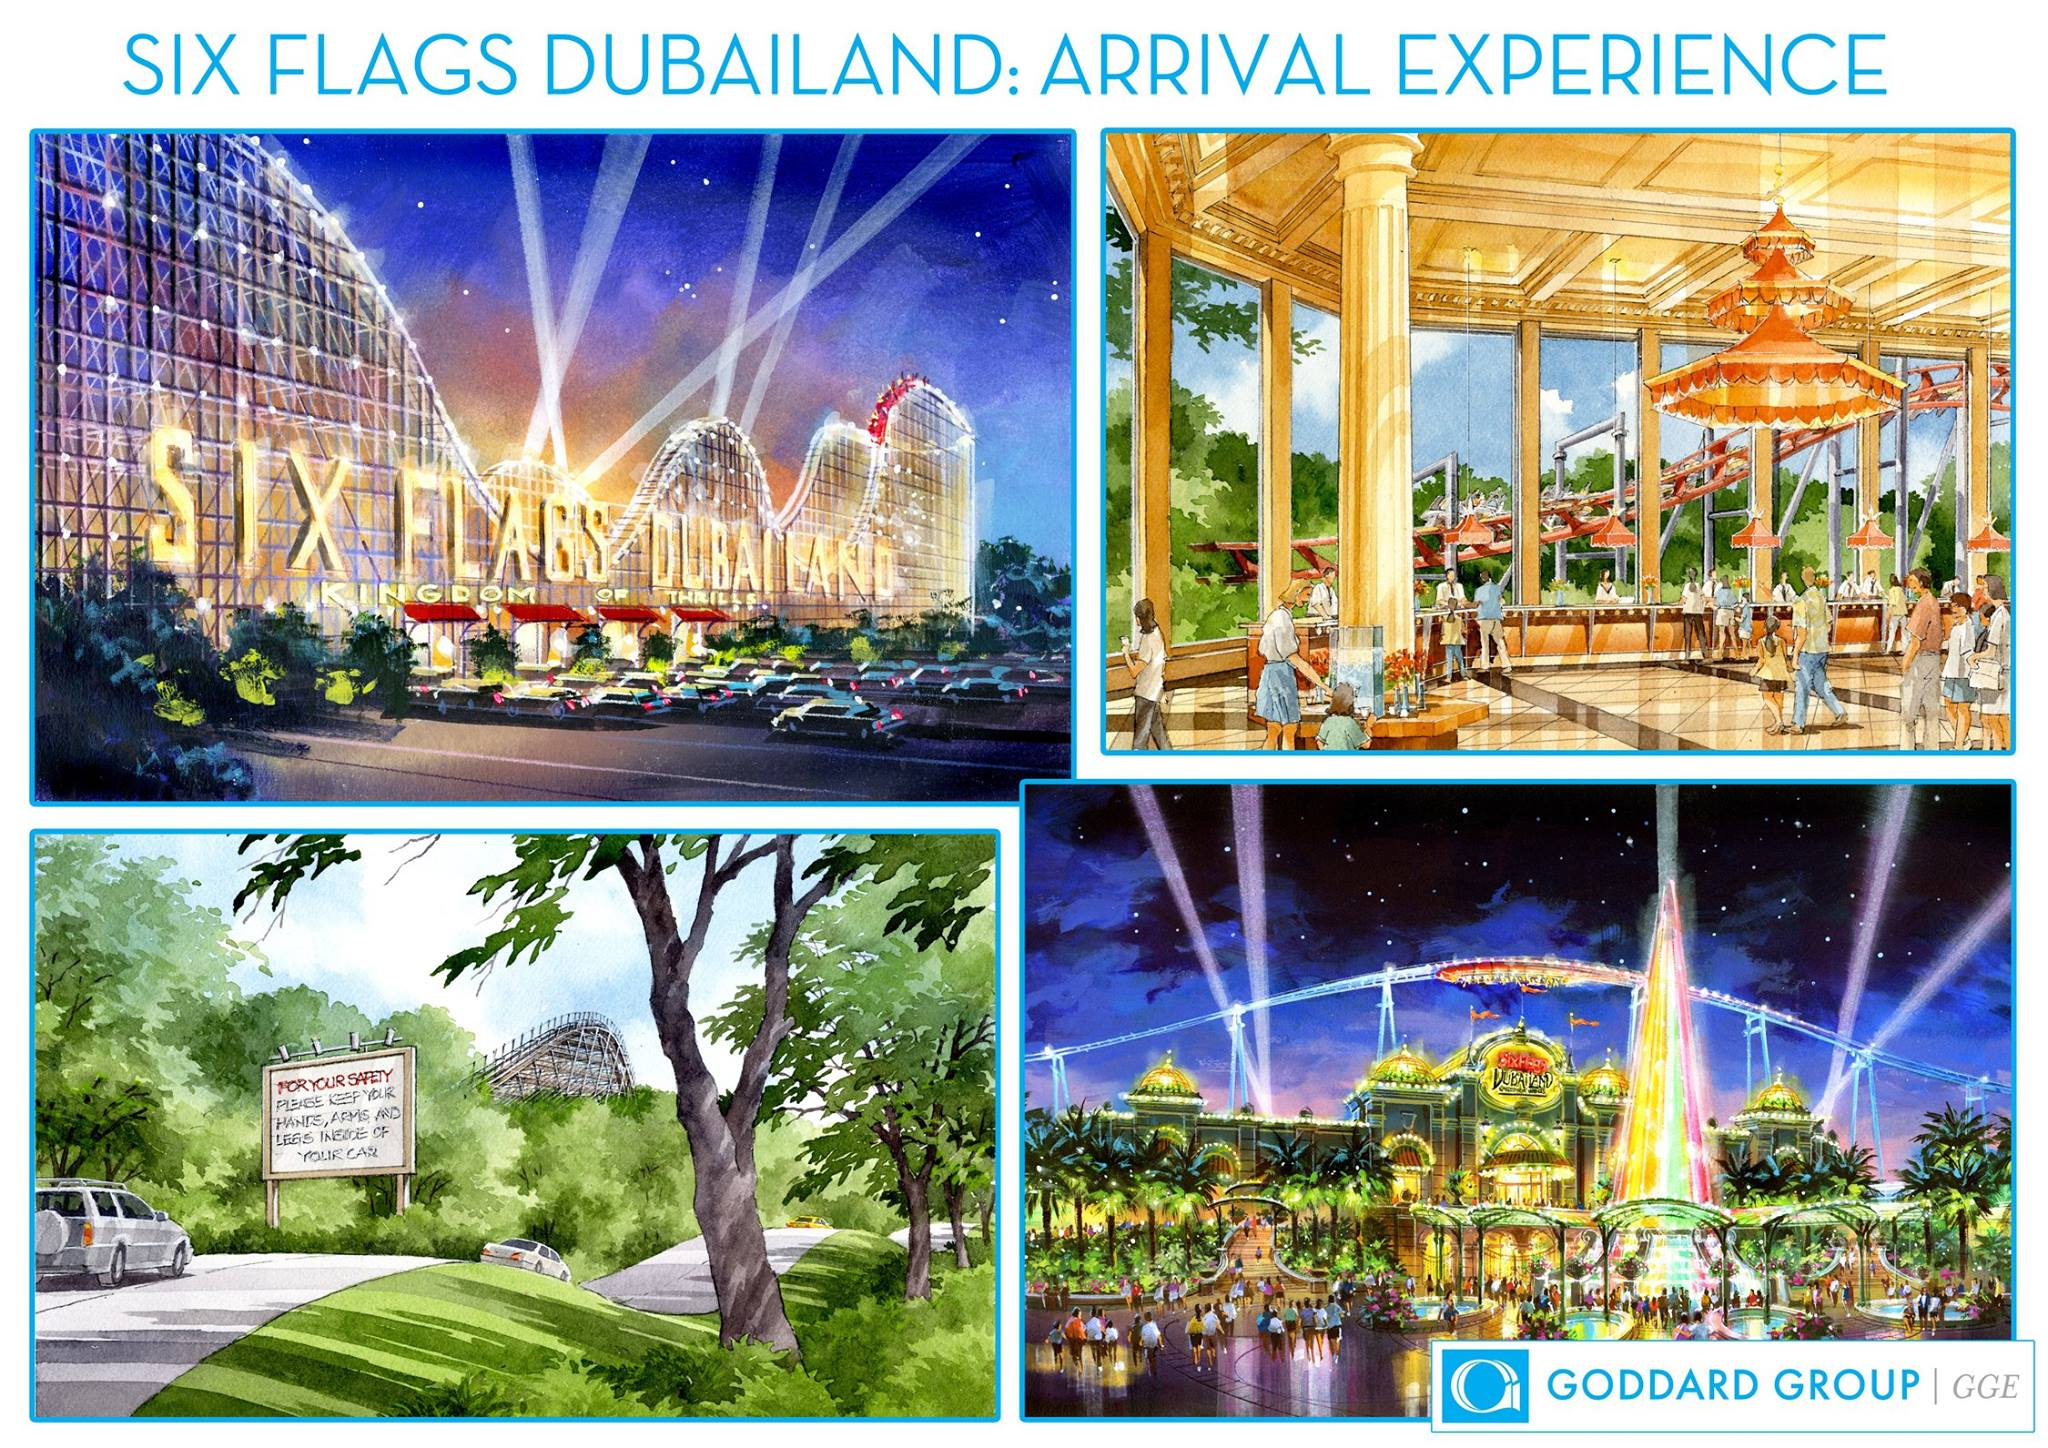 Dubai Parks and Resorts sets terms for Dh1.68bn rights issue